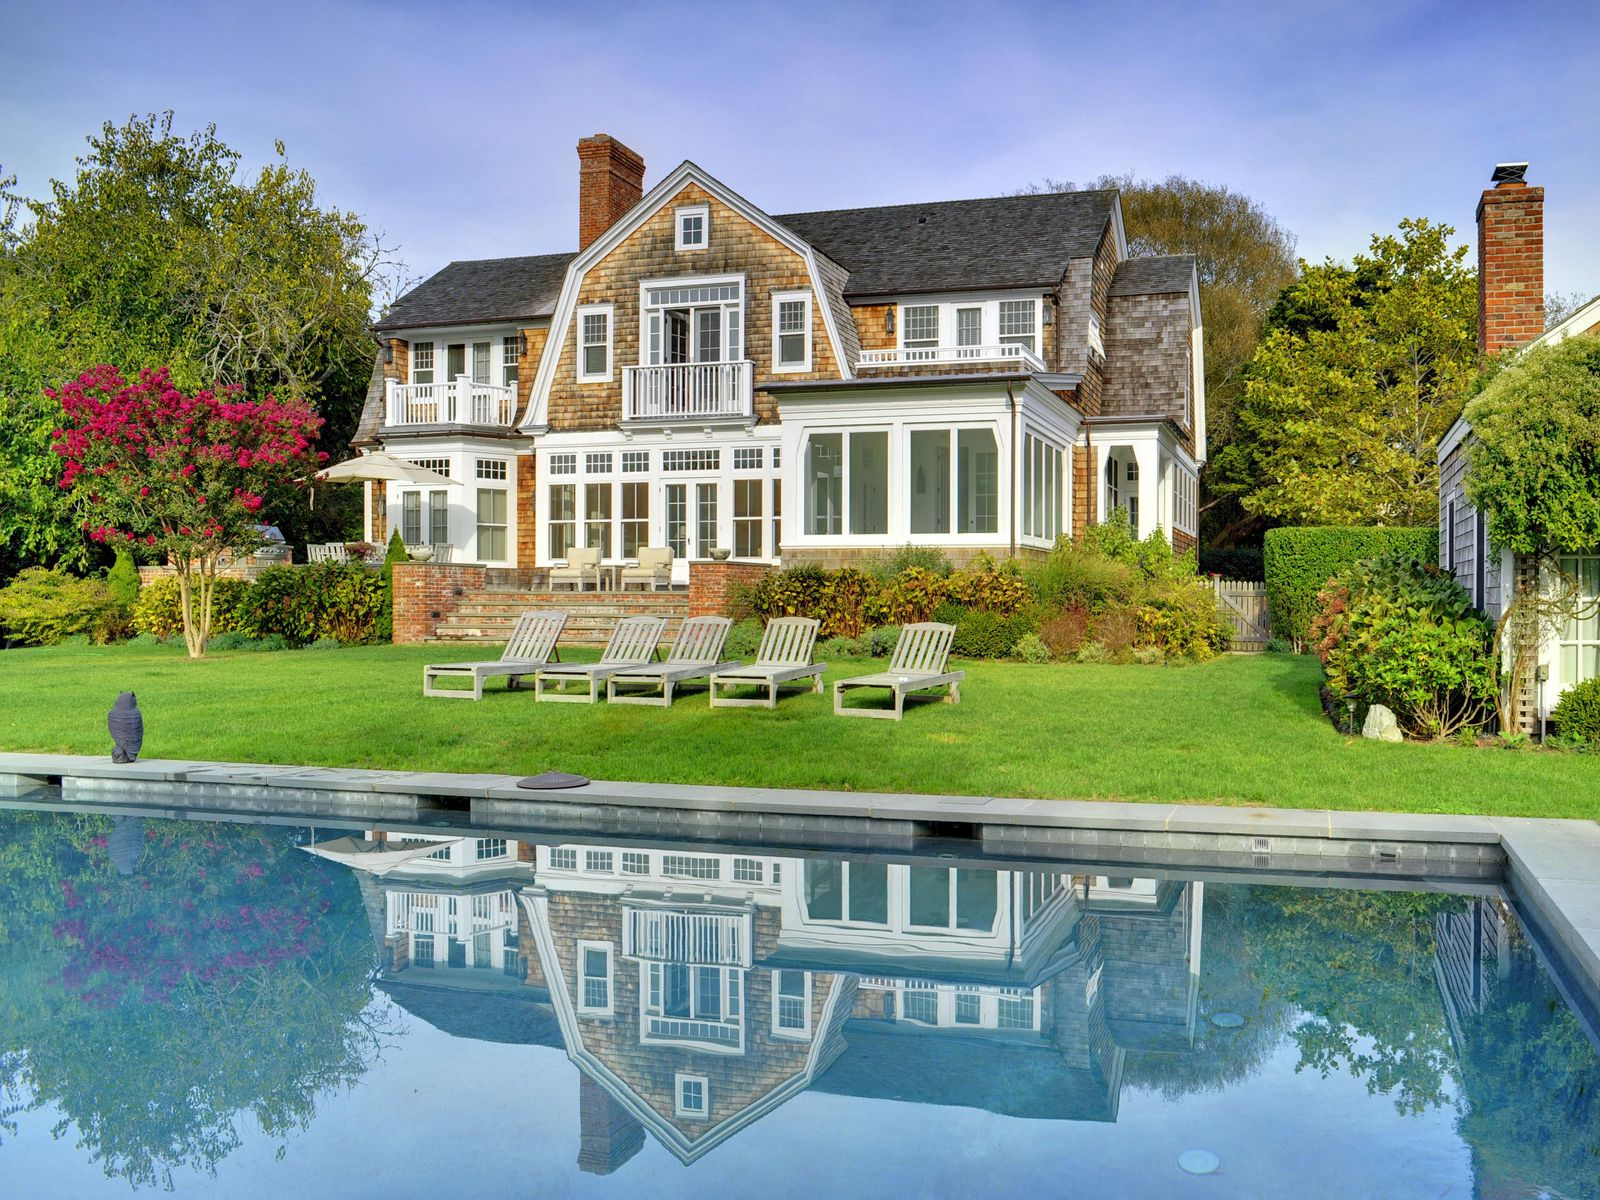 New Egypt Lane Summer Cottage, East Hampton NY Single Family Home - Hamptons Real Estate